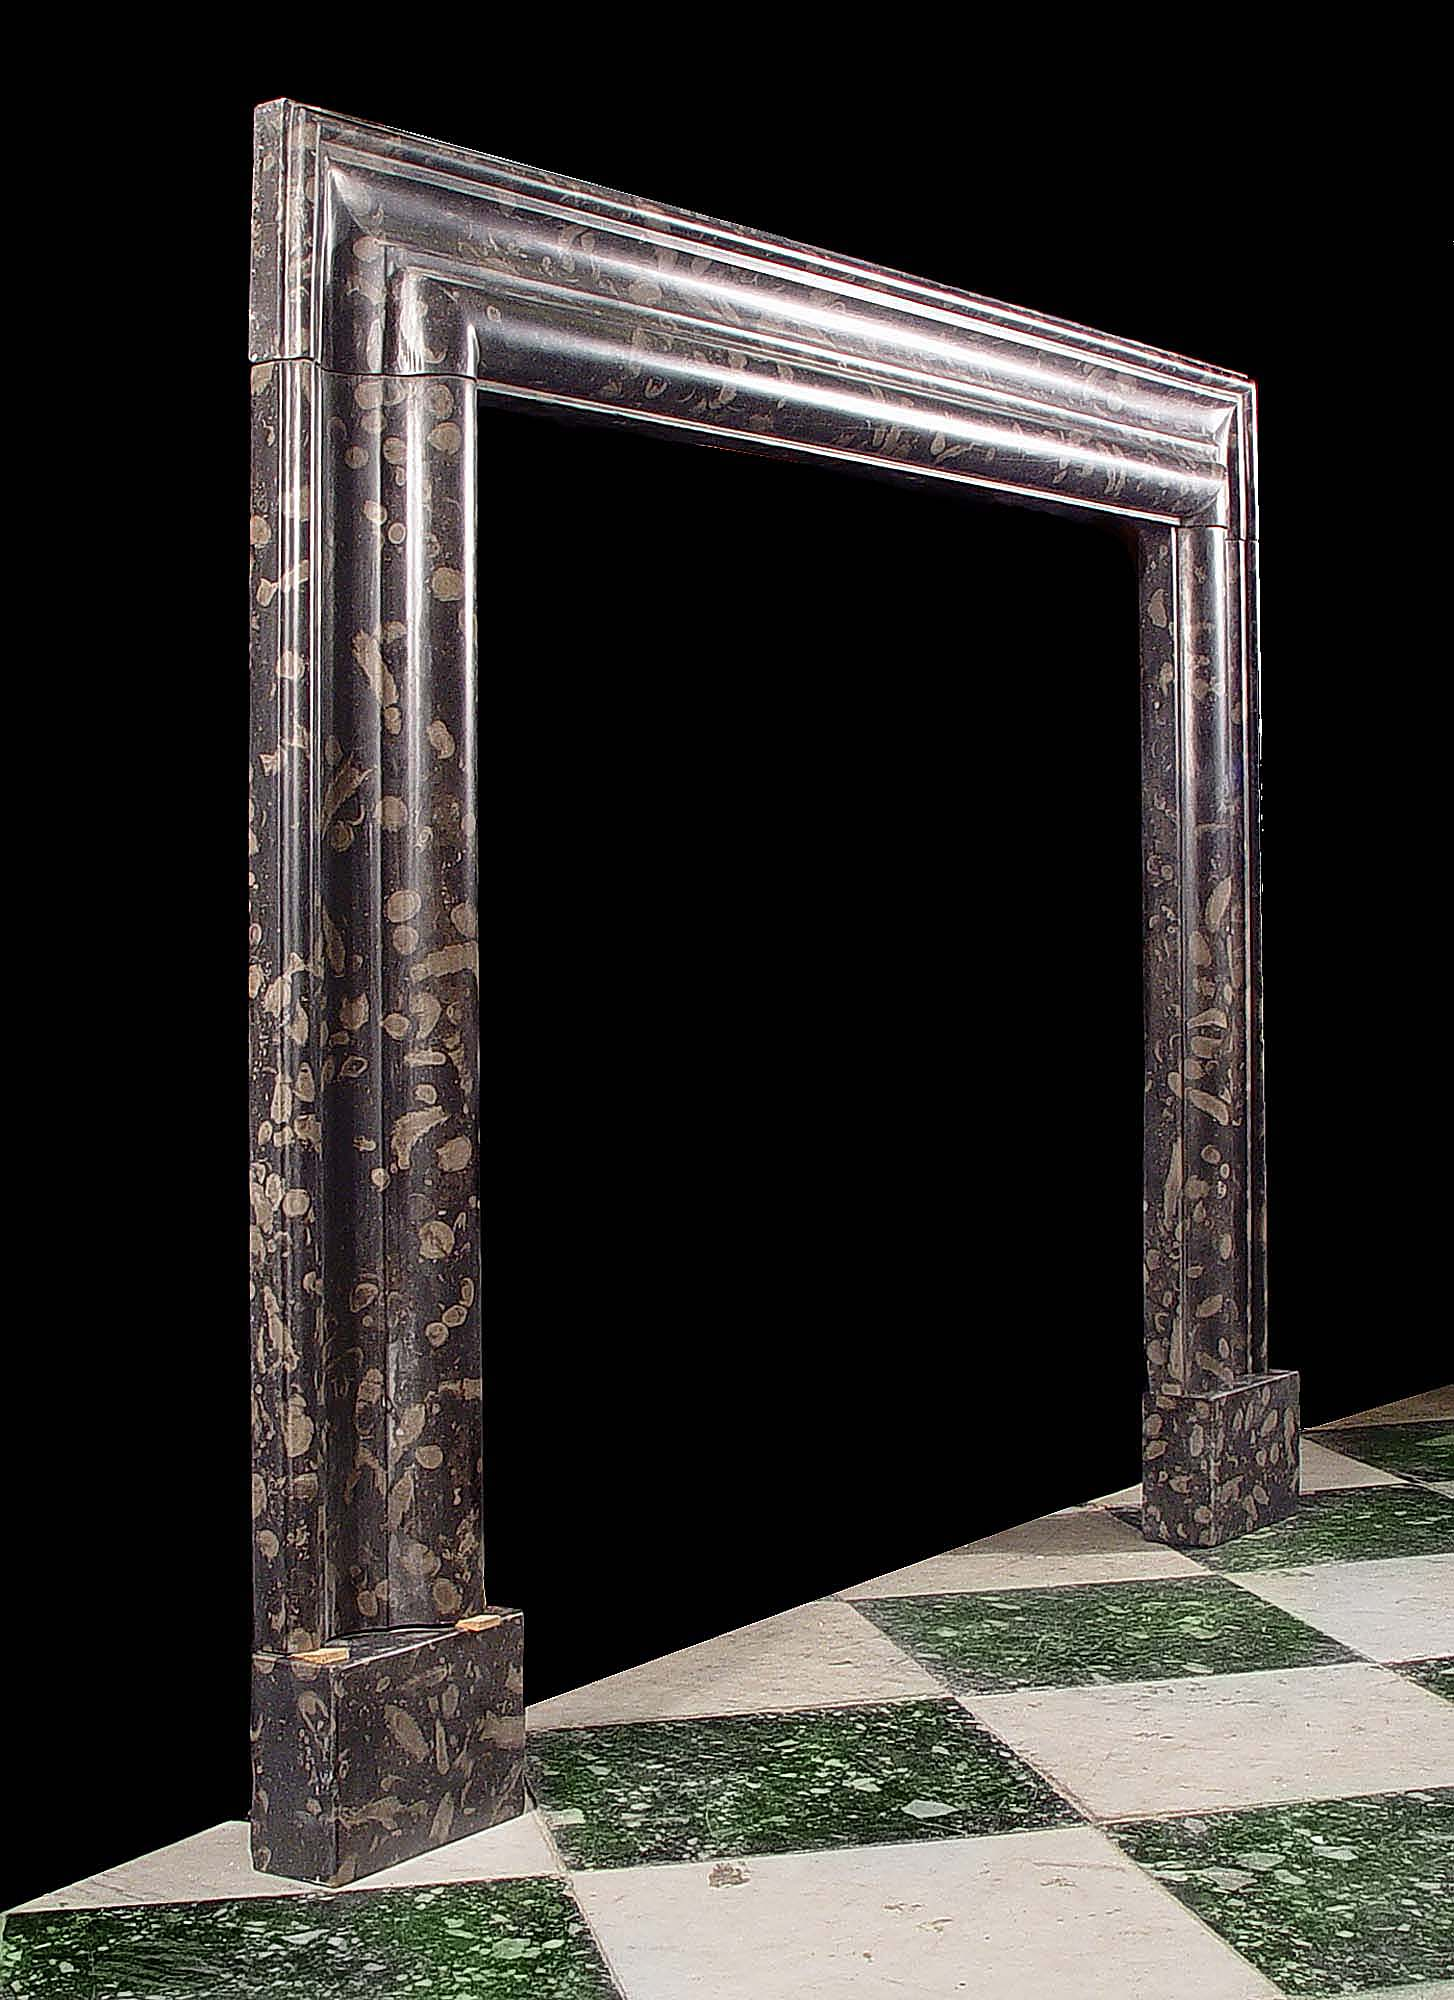 Antique Frosterly Bolection fireplace in Marble